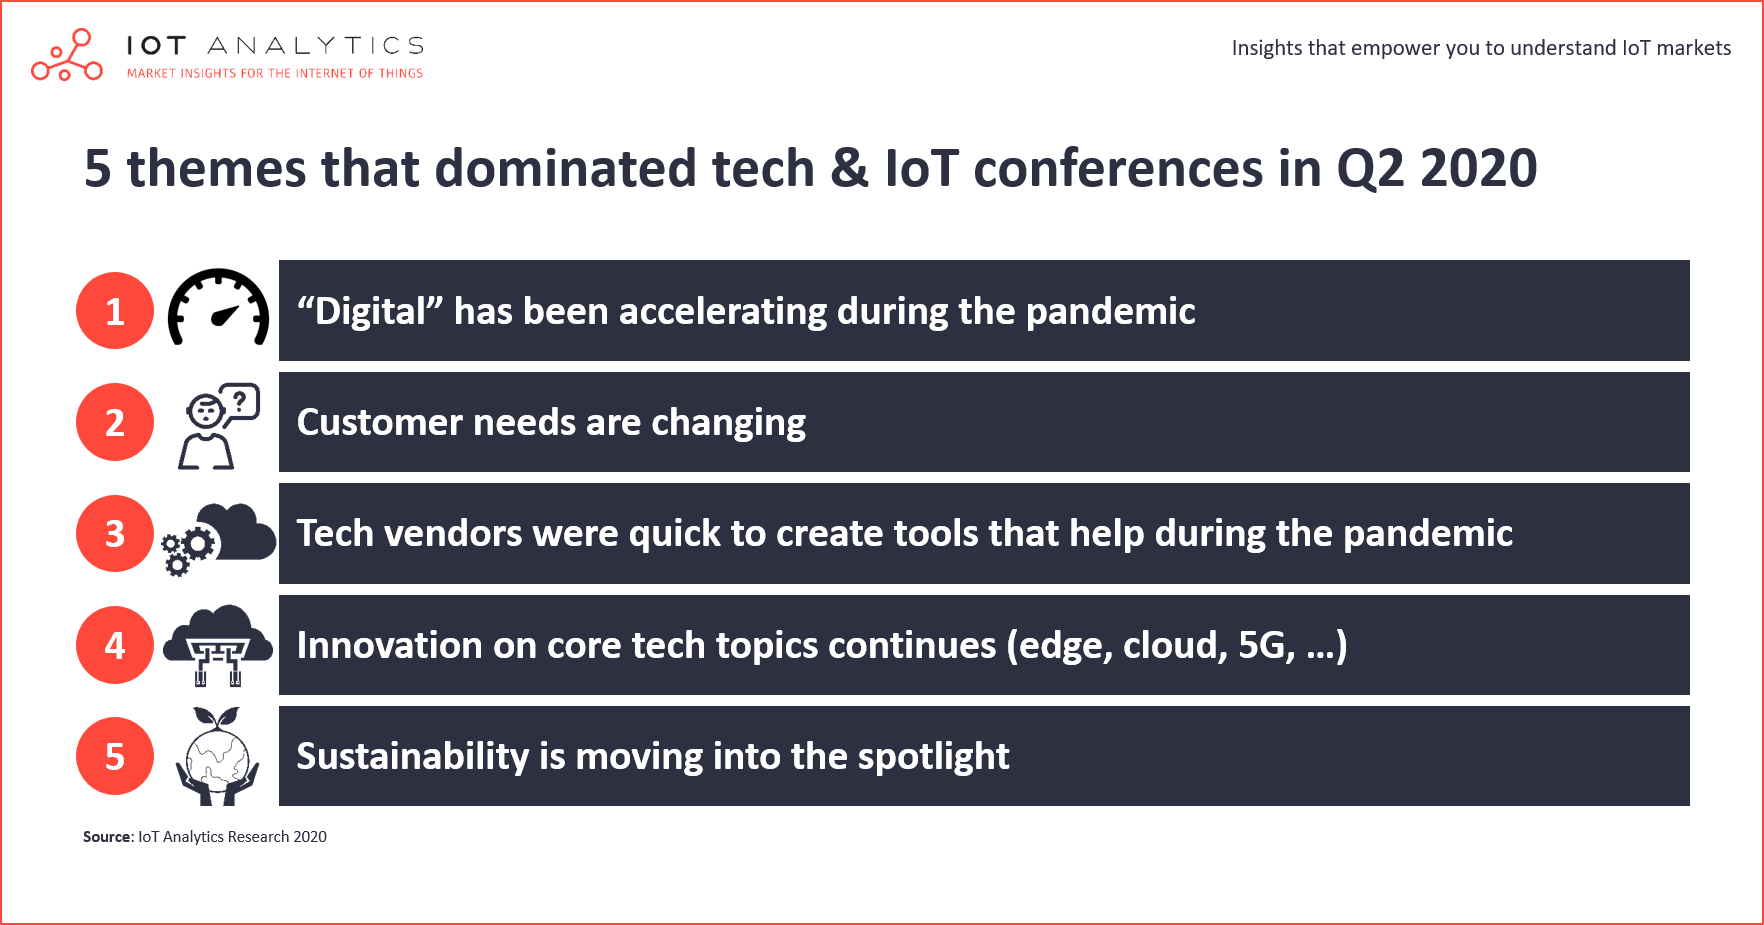 5 themes that dominated virtual tech and IoT conferences 2020